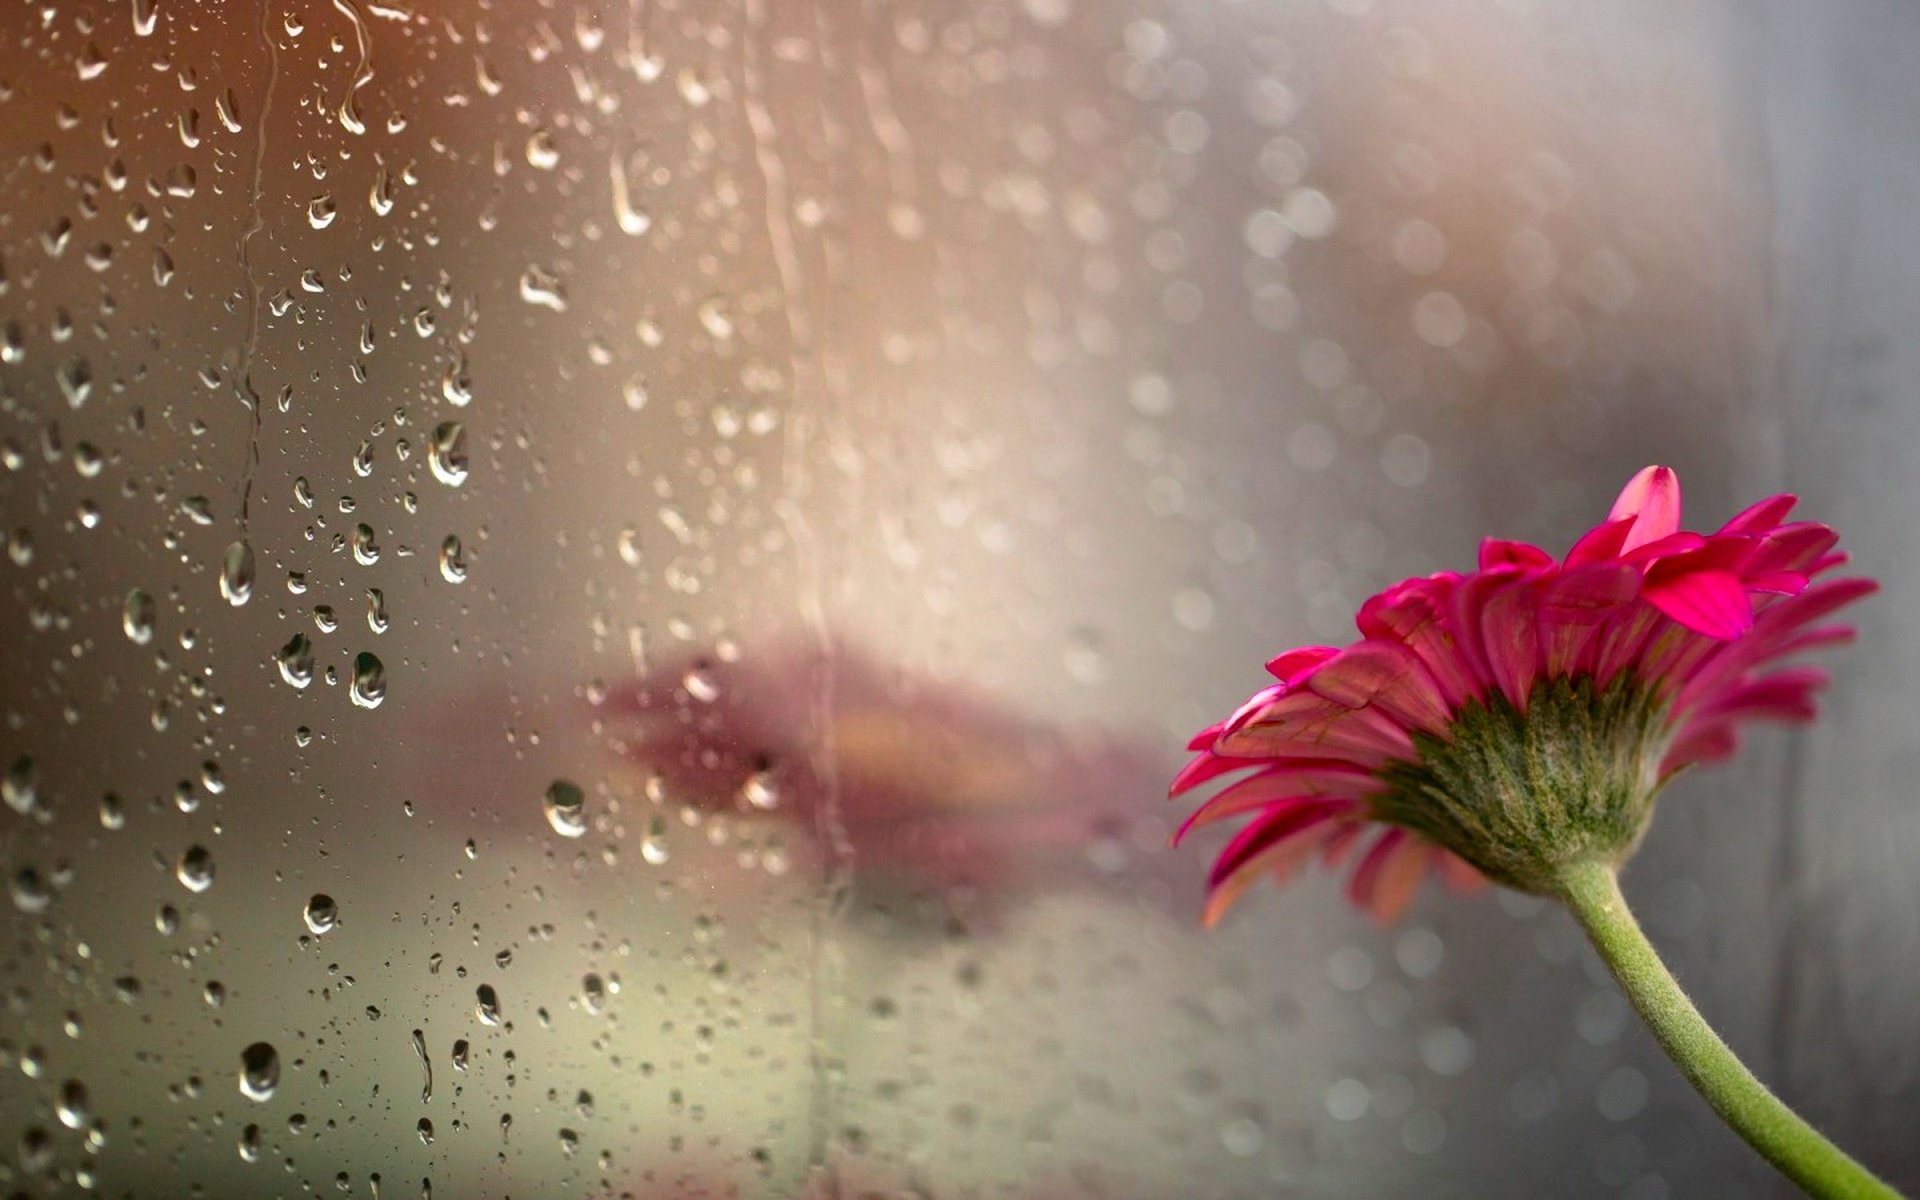 Spring Rain Wallpaper For Desktop Wallpapersafari